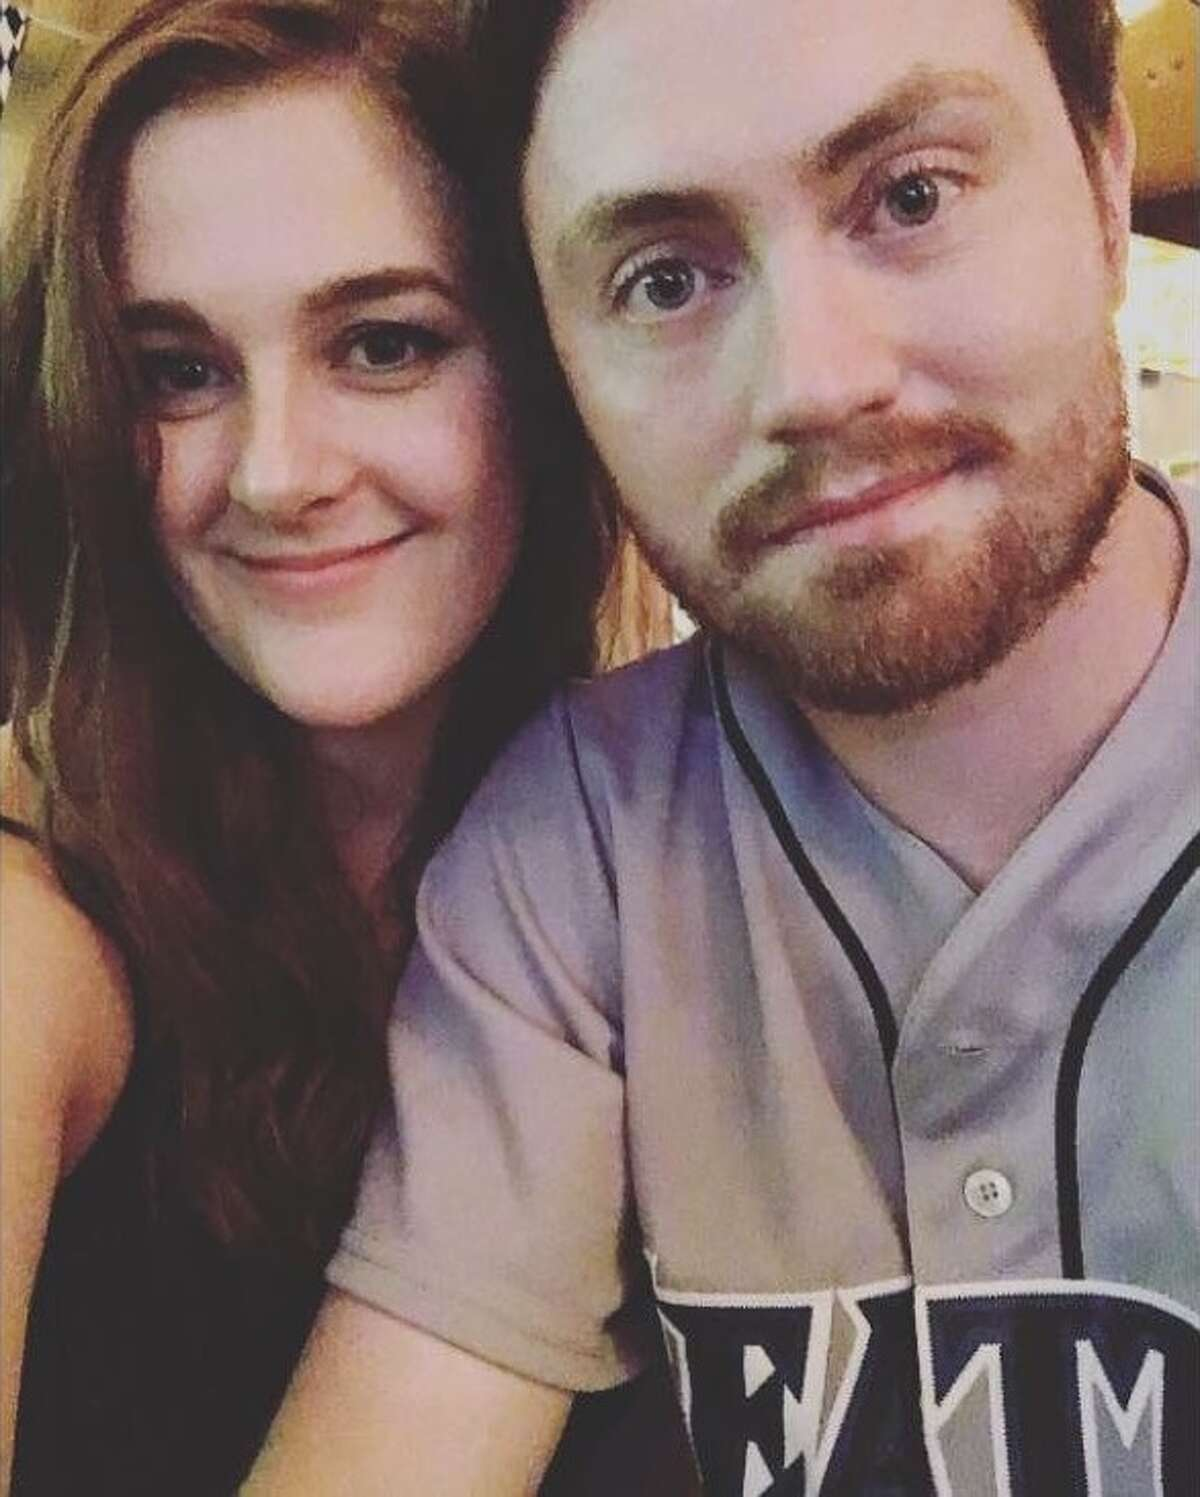 Pat Cushing and his girlfriend, Amanda Halse, were both killed in the limo crash in Schoharie on Oct. 6, 2018. Lawyers for Cushingand another victim, Rachael Cavosie, said the SchoharieCounty coroner has yet to turn over key autopsy records.